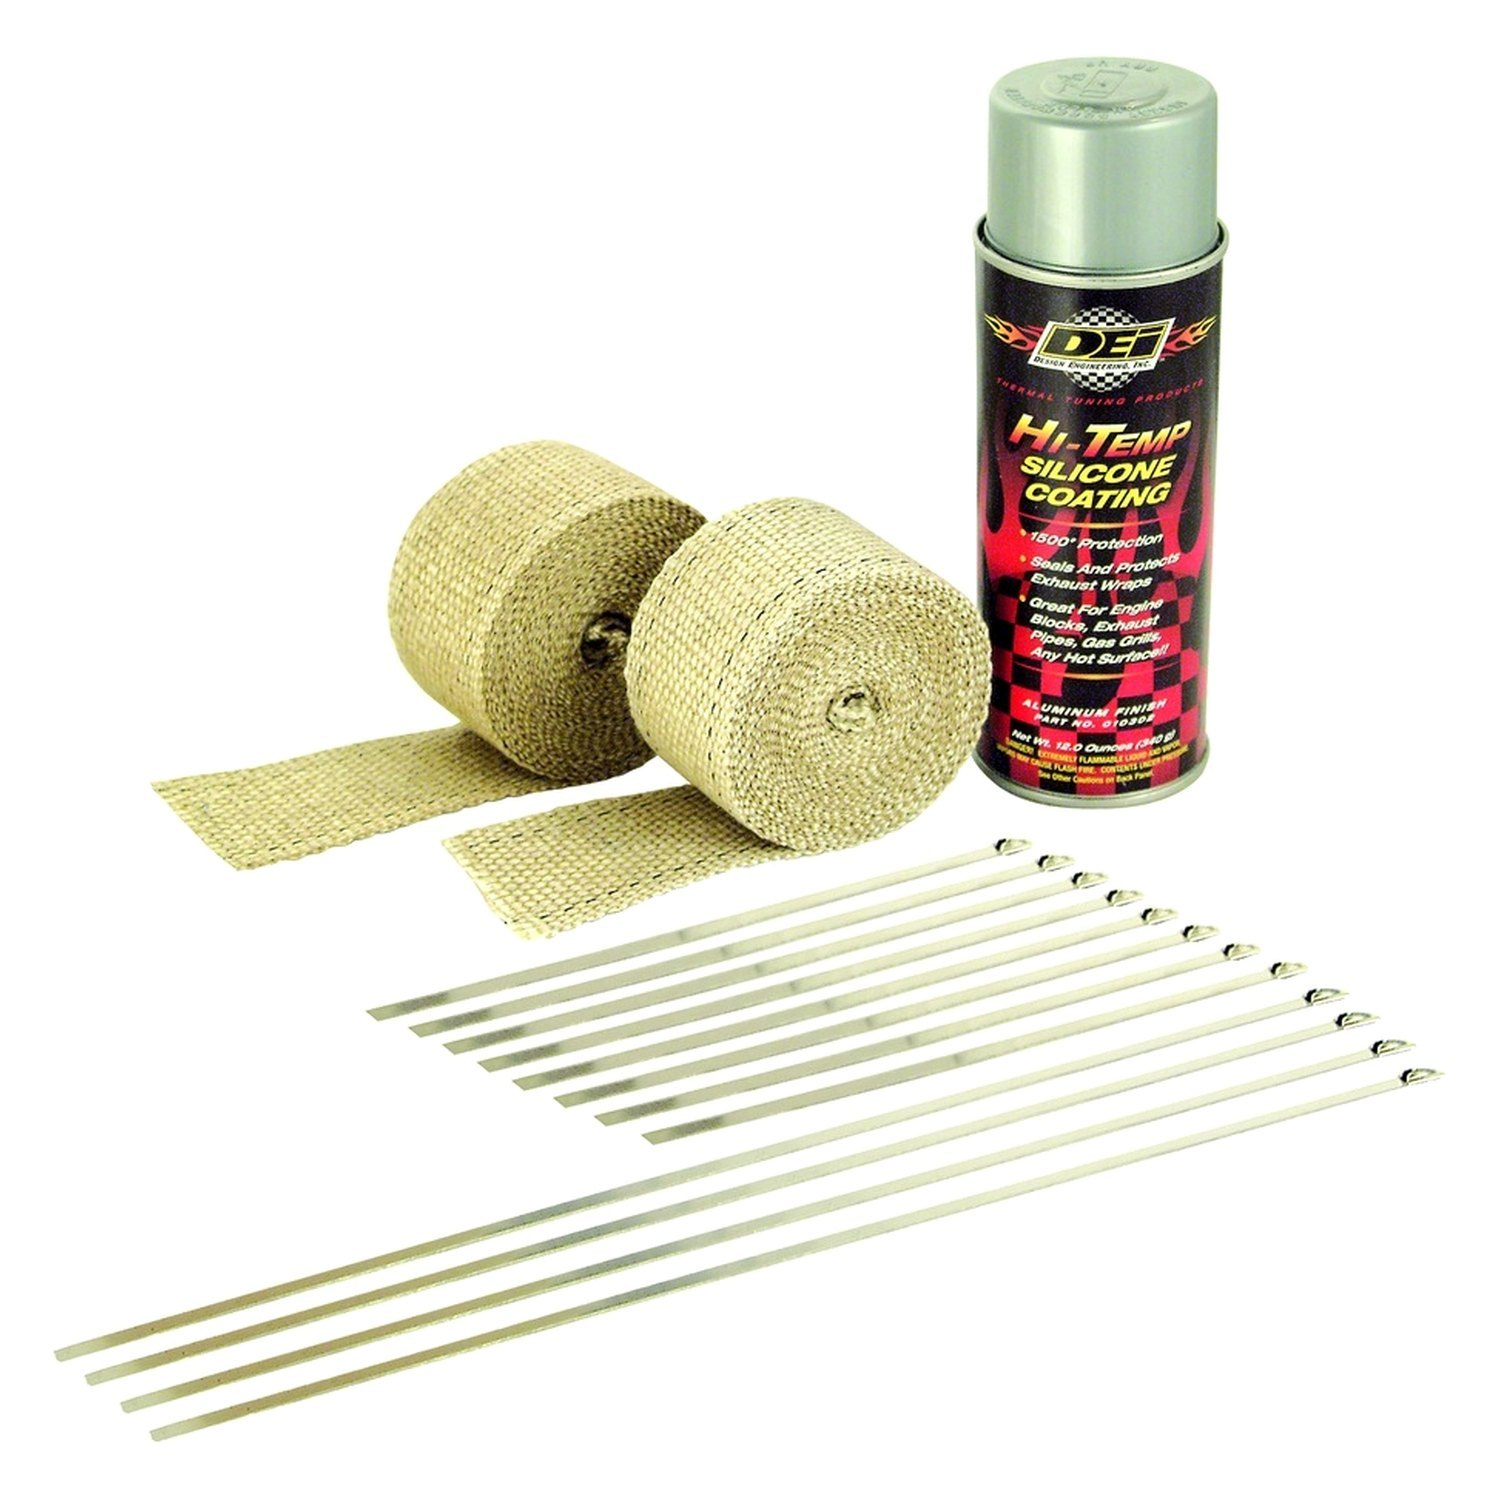 Design Engineering® 010331 - Tan Motorcycle Exhaust Pipe Wrap Kit with  Aluminum HT Silicone Coating Spray